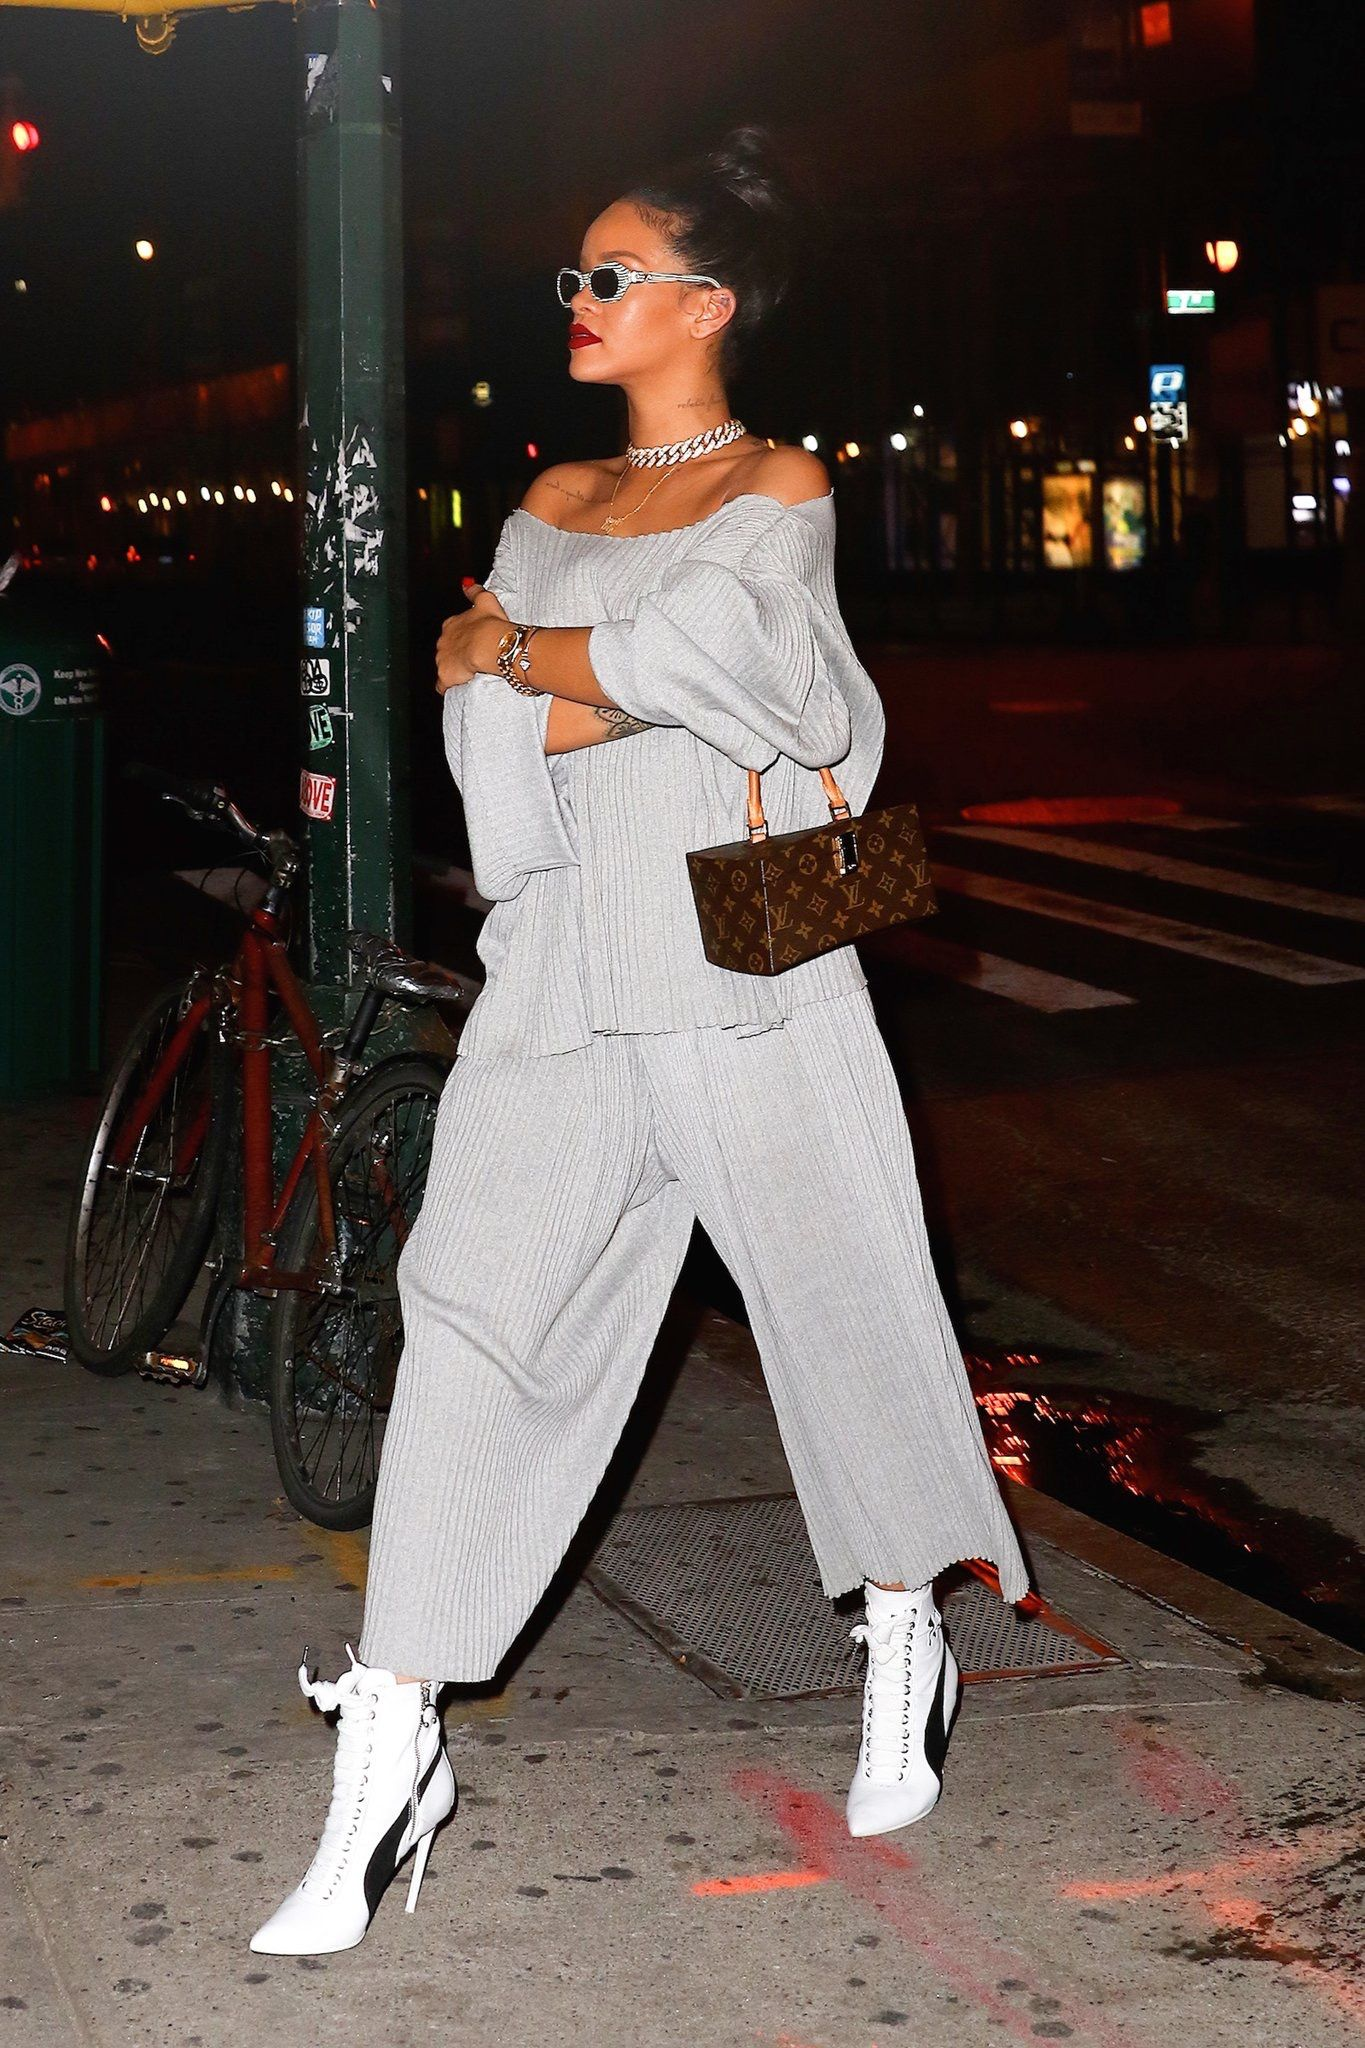 Rihanna in NYC September 23 | Only Girl (In the World